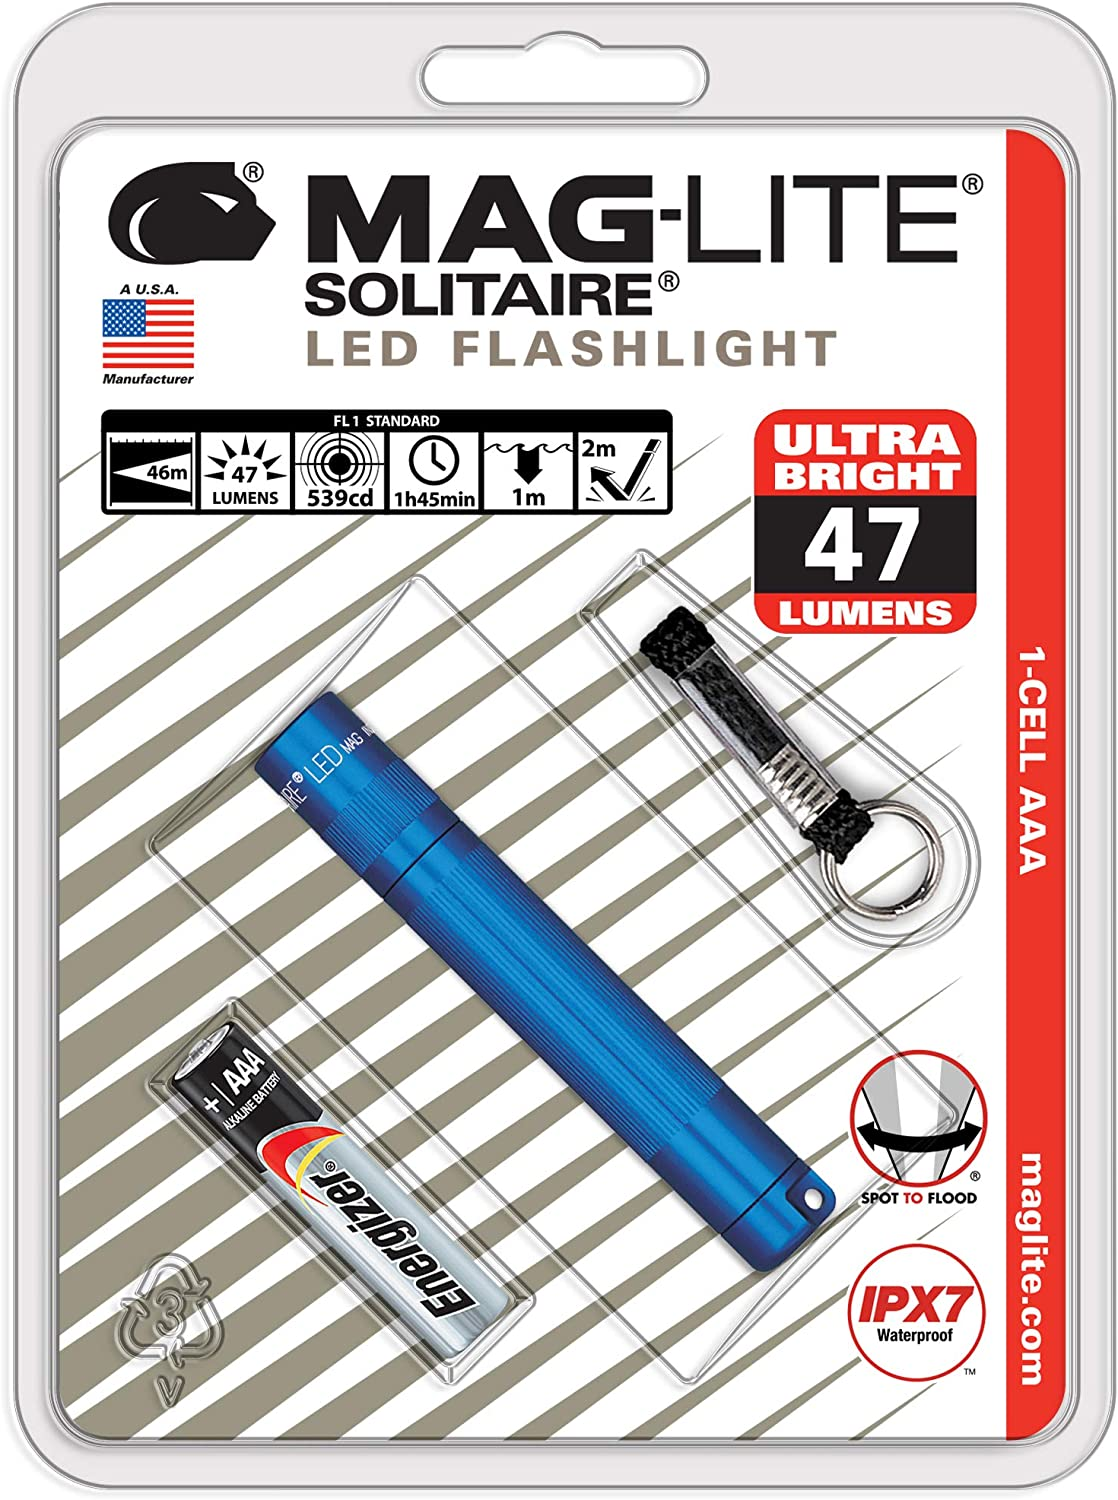 NEW MAGLITE BLUE SOLITAIRE FLASHLIGHT MADE IN USA